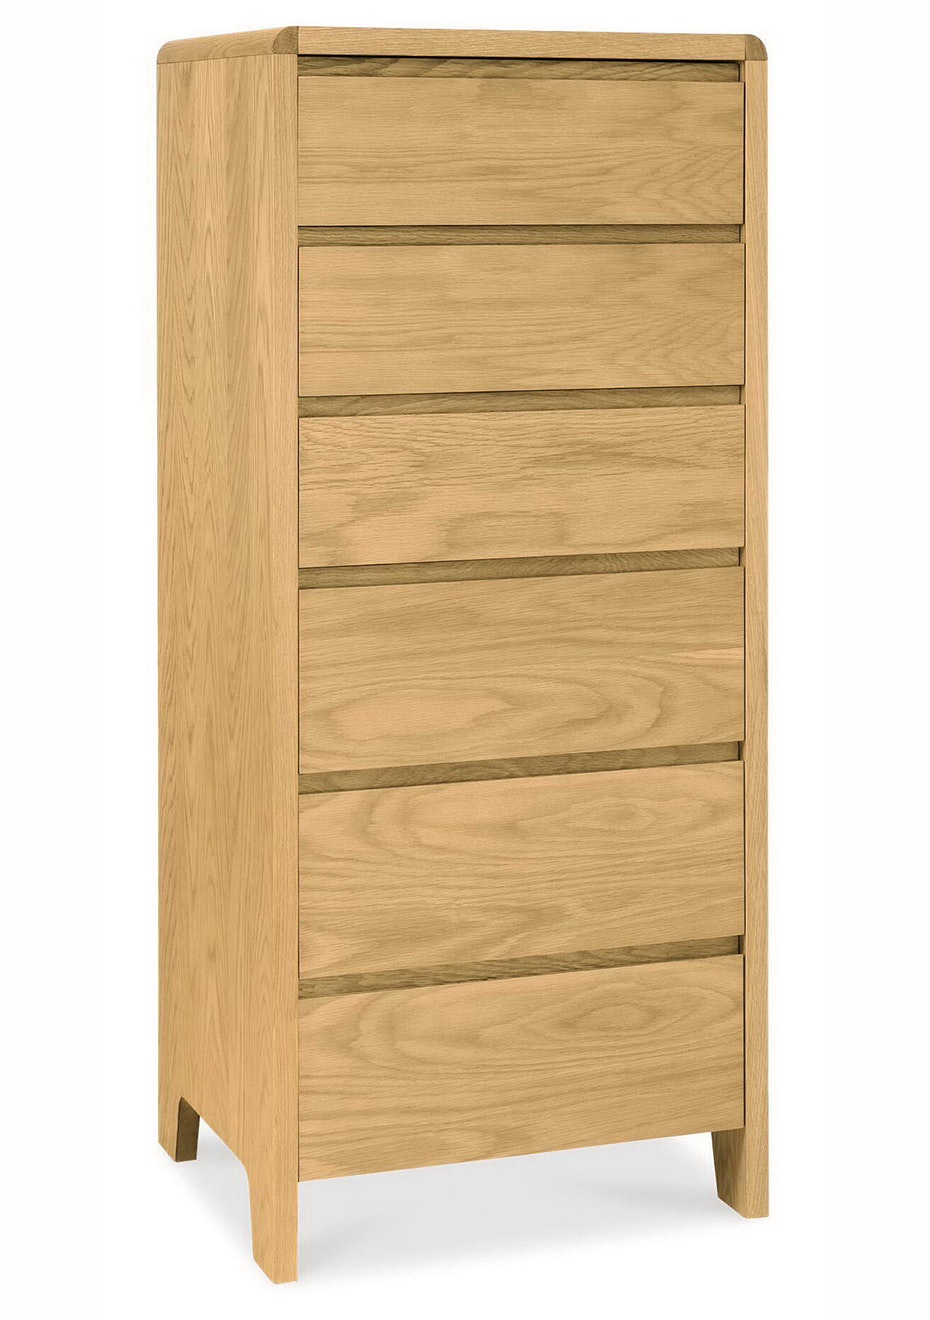 Furniture By Design - Capri Oak 6drw Tall Chest- Light Oak